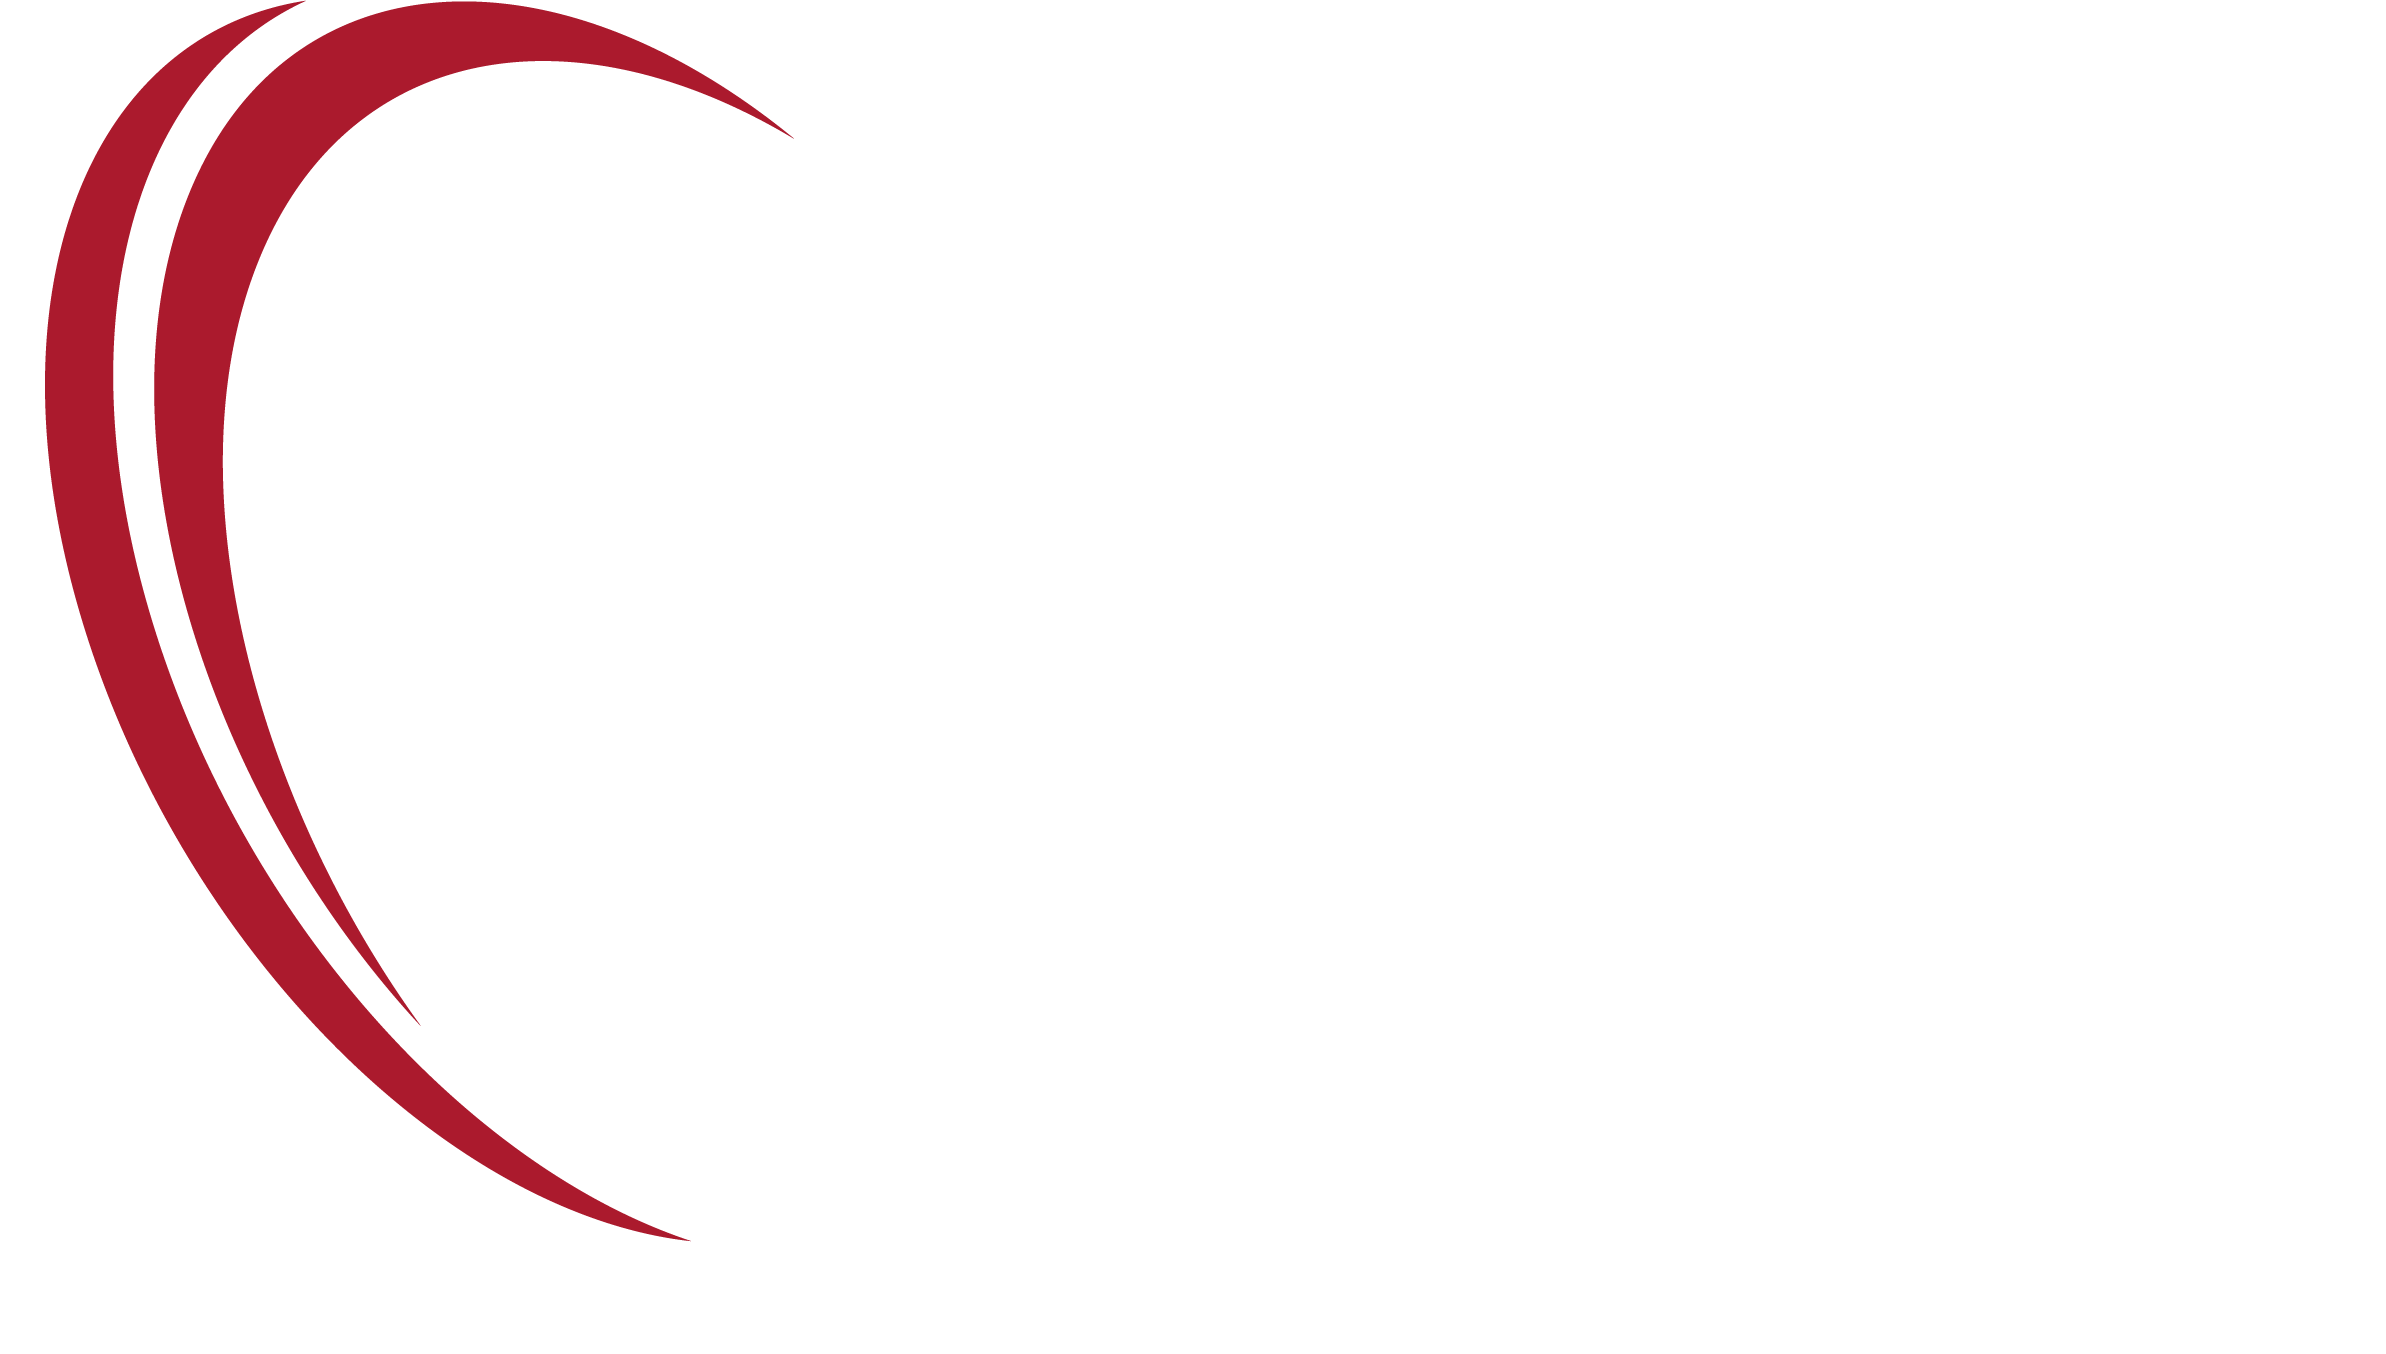 Central Illinois Ag - Brand Update